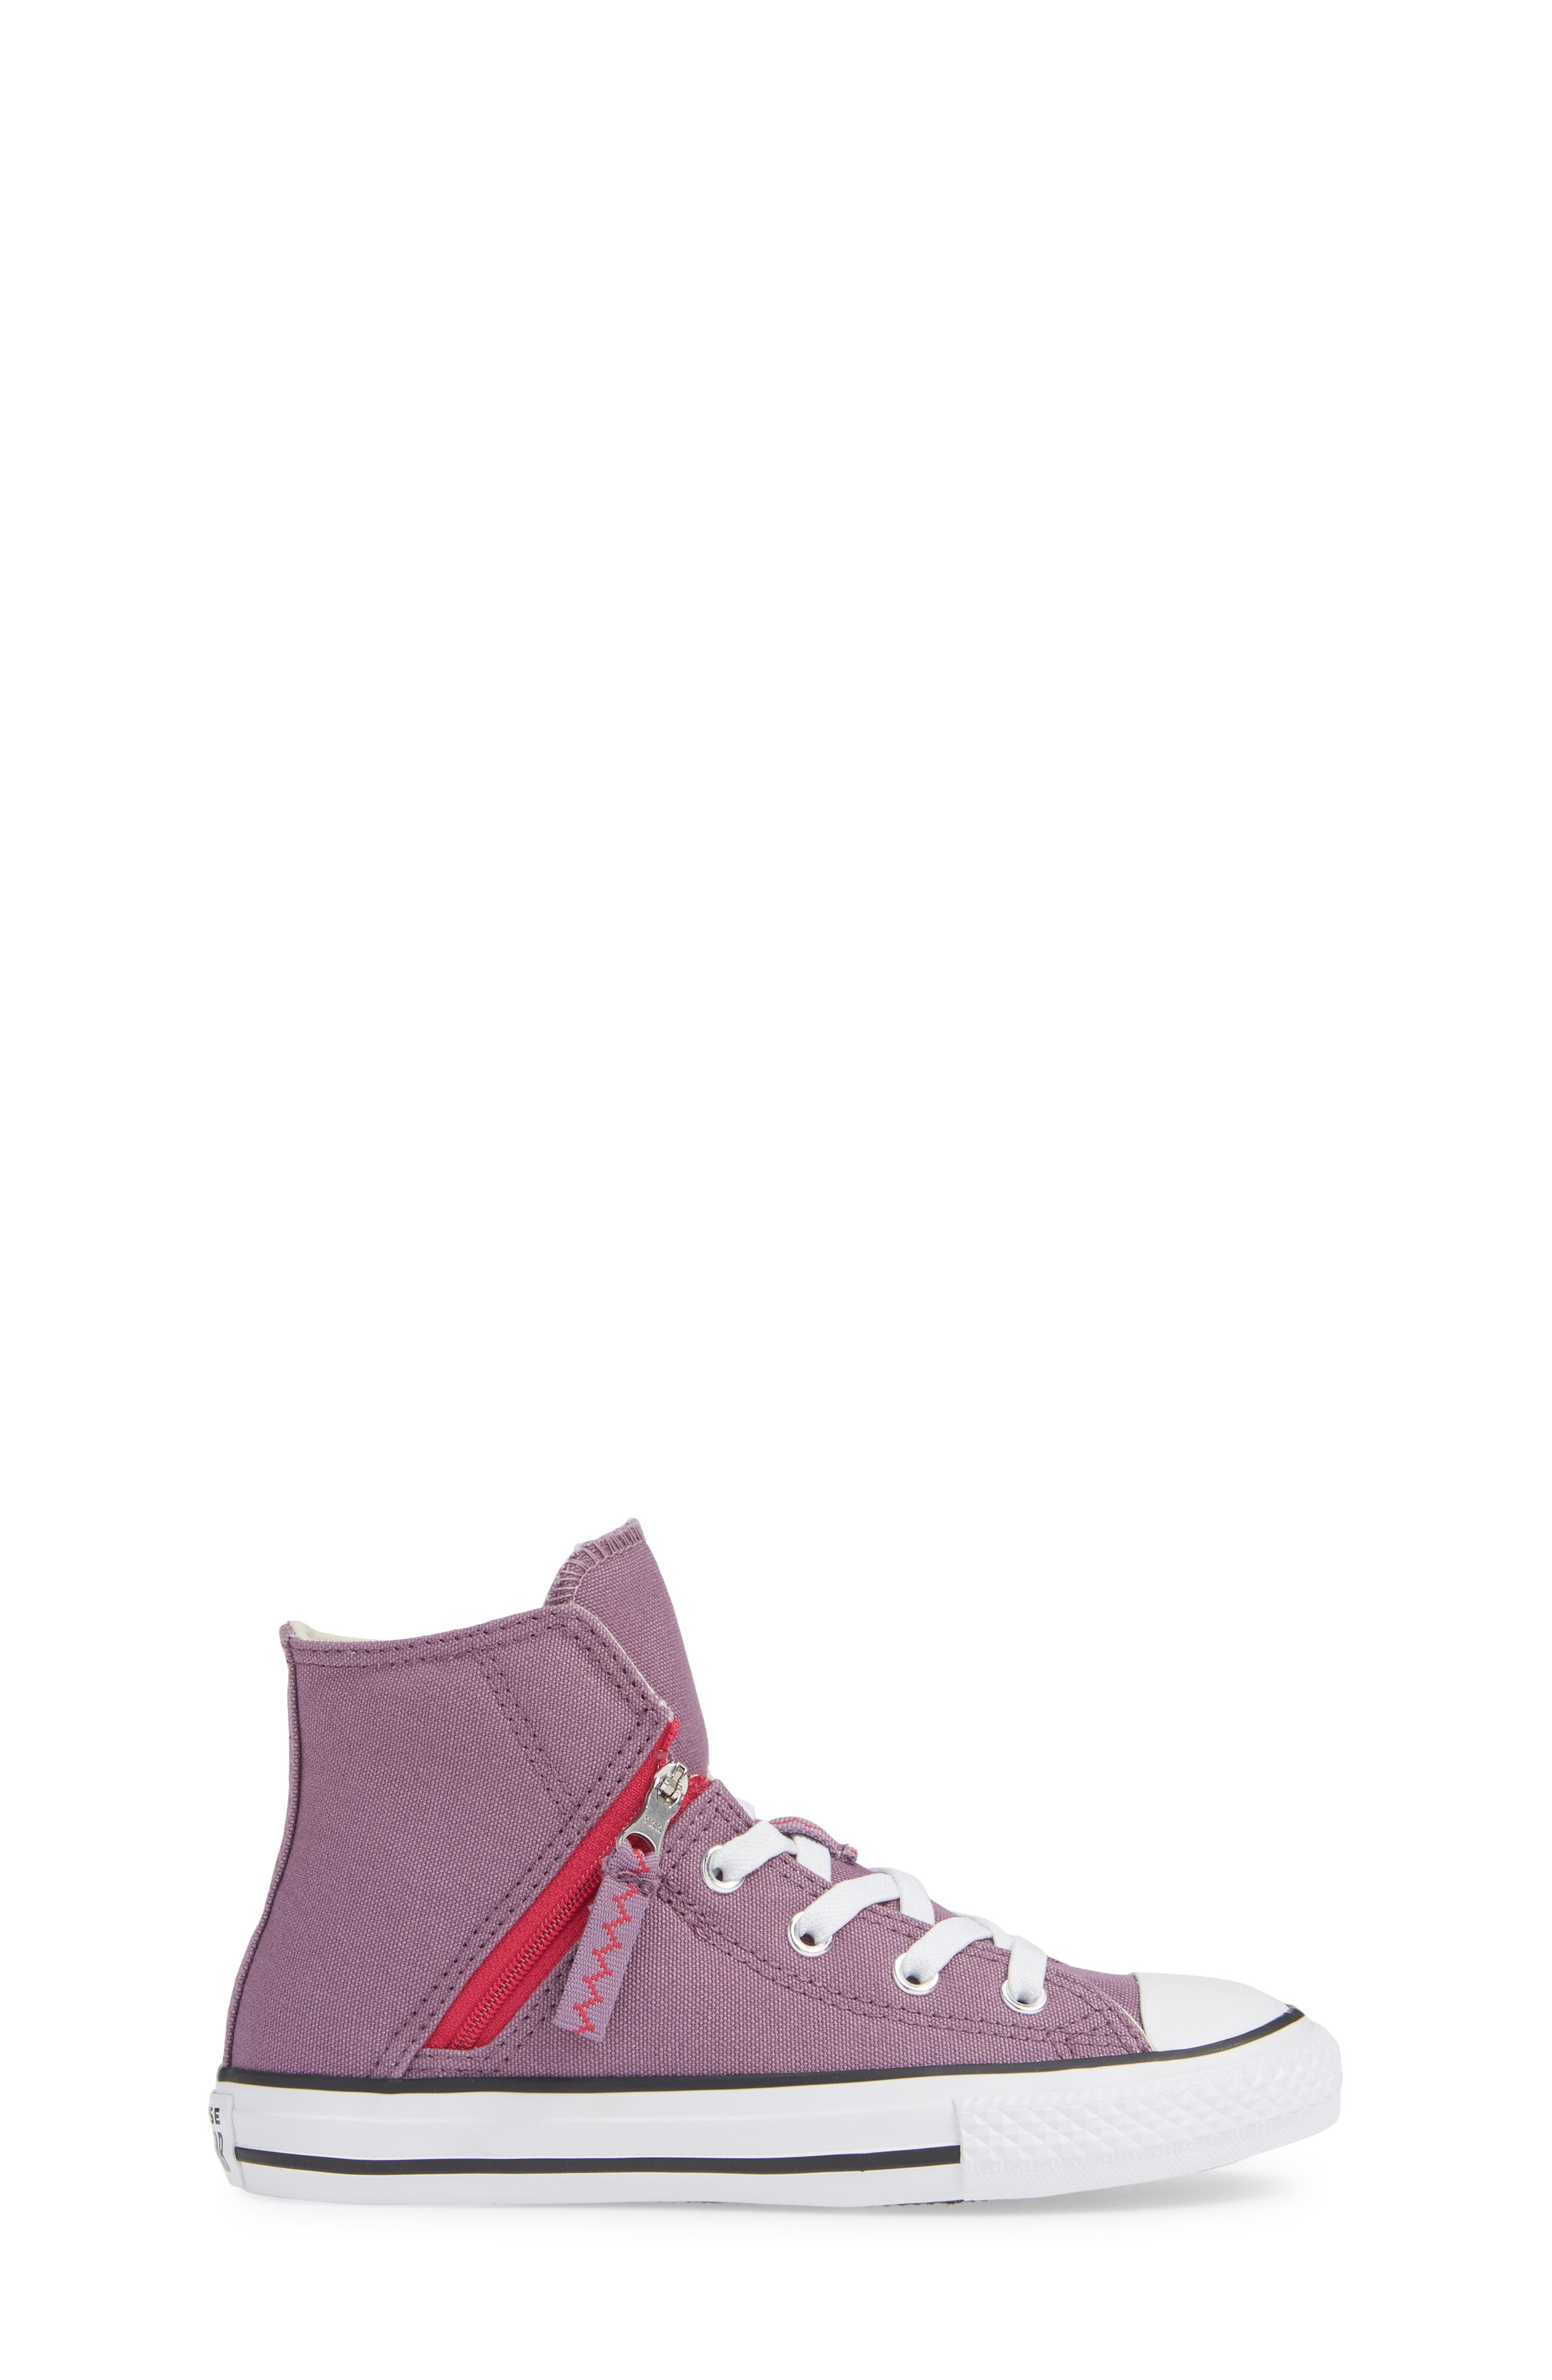 Chuck Taylor<sup>®</sup> All Star<sup>®</sup> Pull Zip High Top Sneaker,                             Alternate thumbnail 6, color,                             Violet Dust